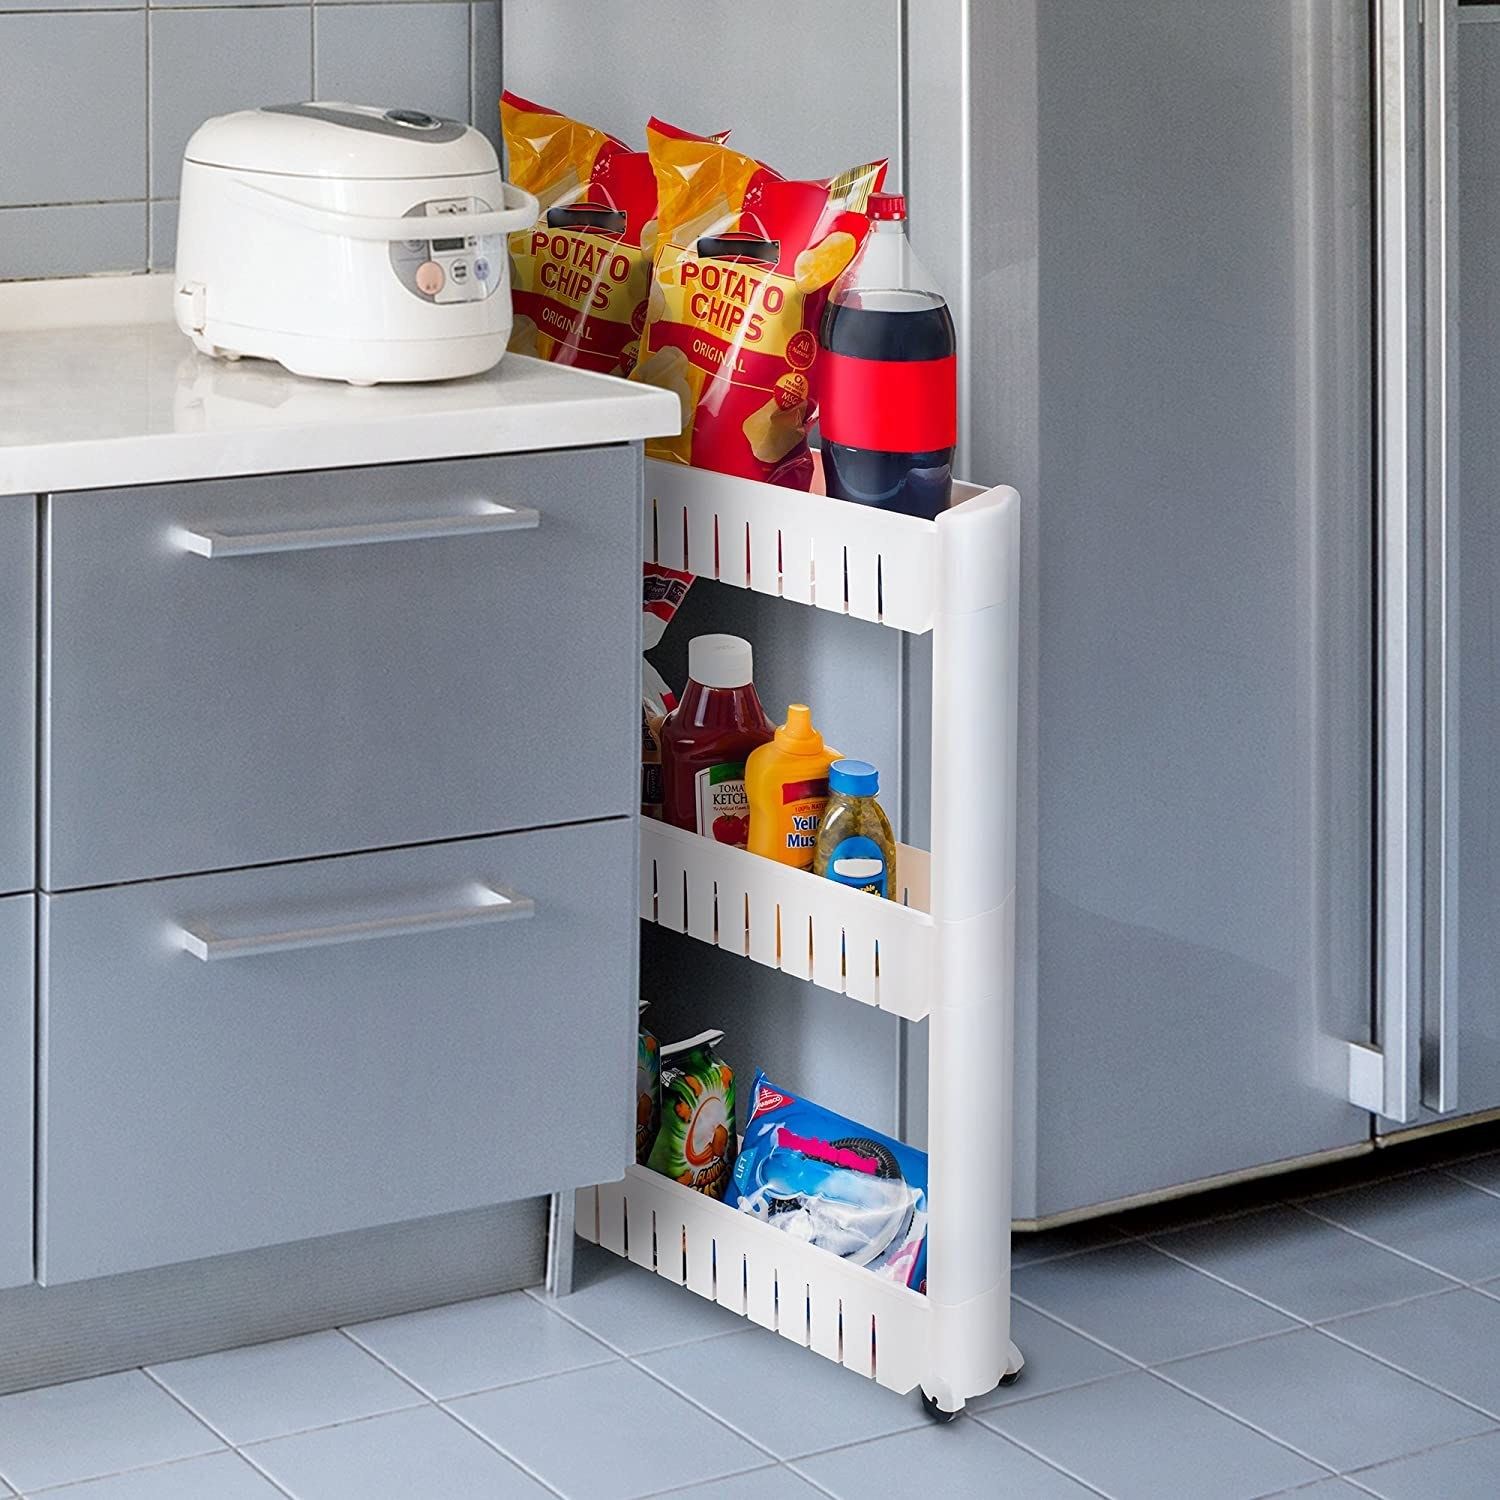 The three-tiered shelf between a counter and a fridge, stocked with snacks